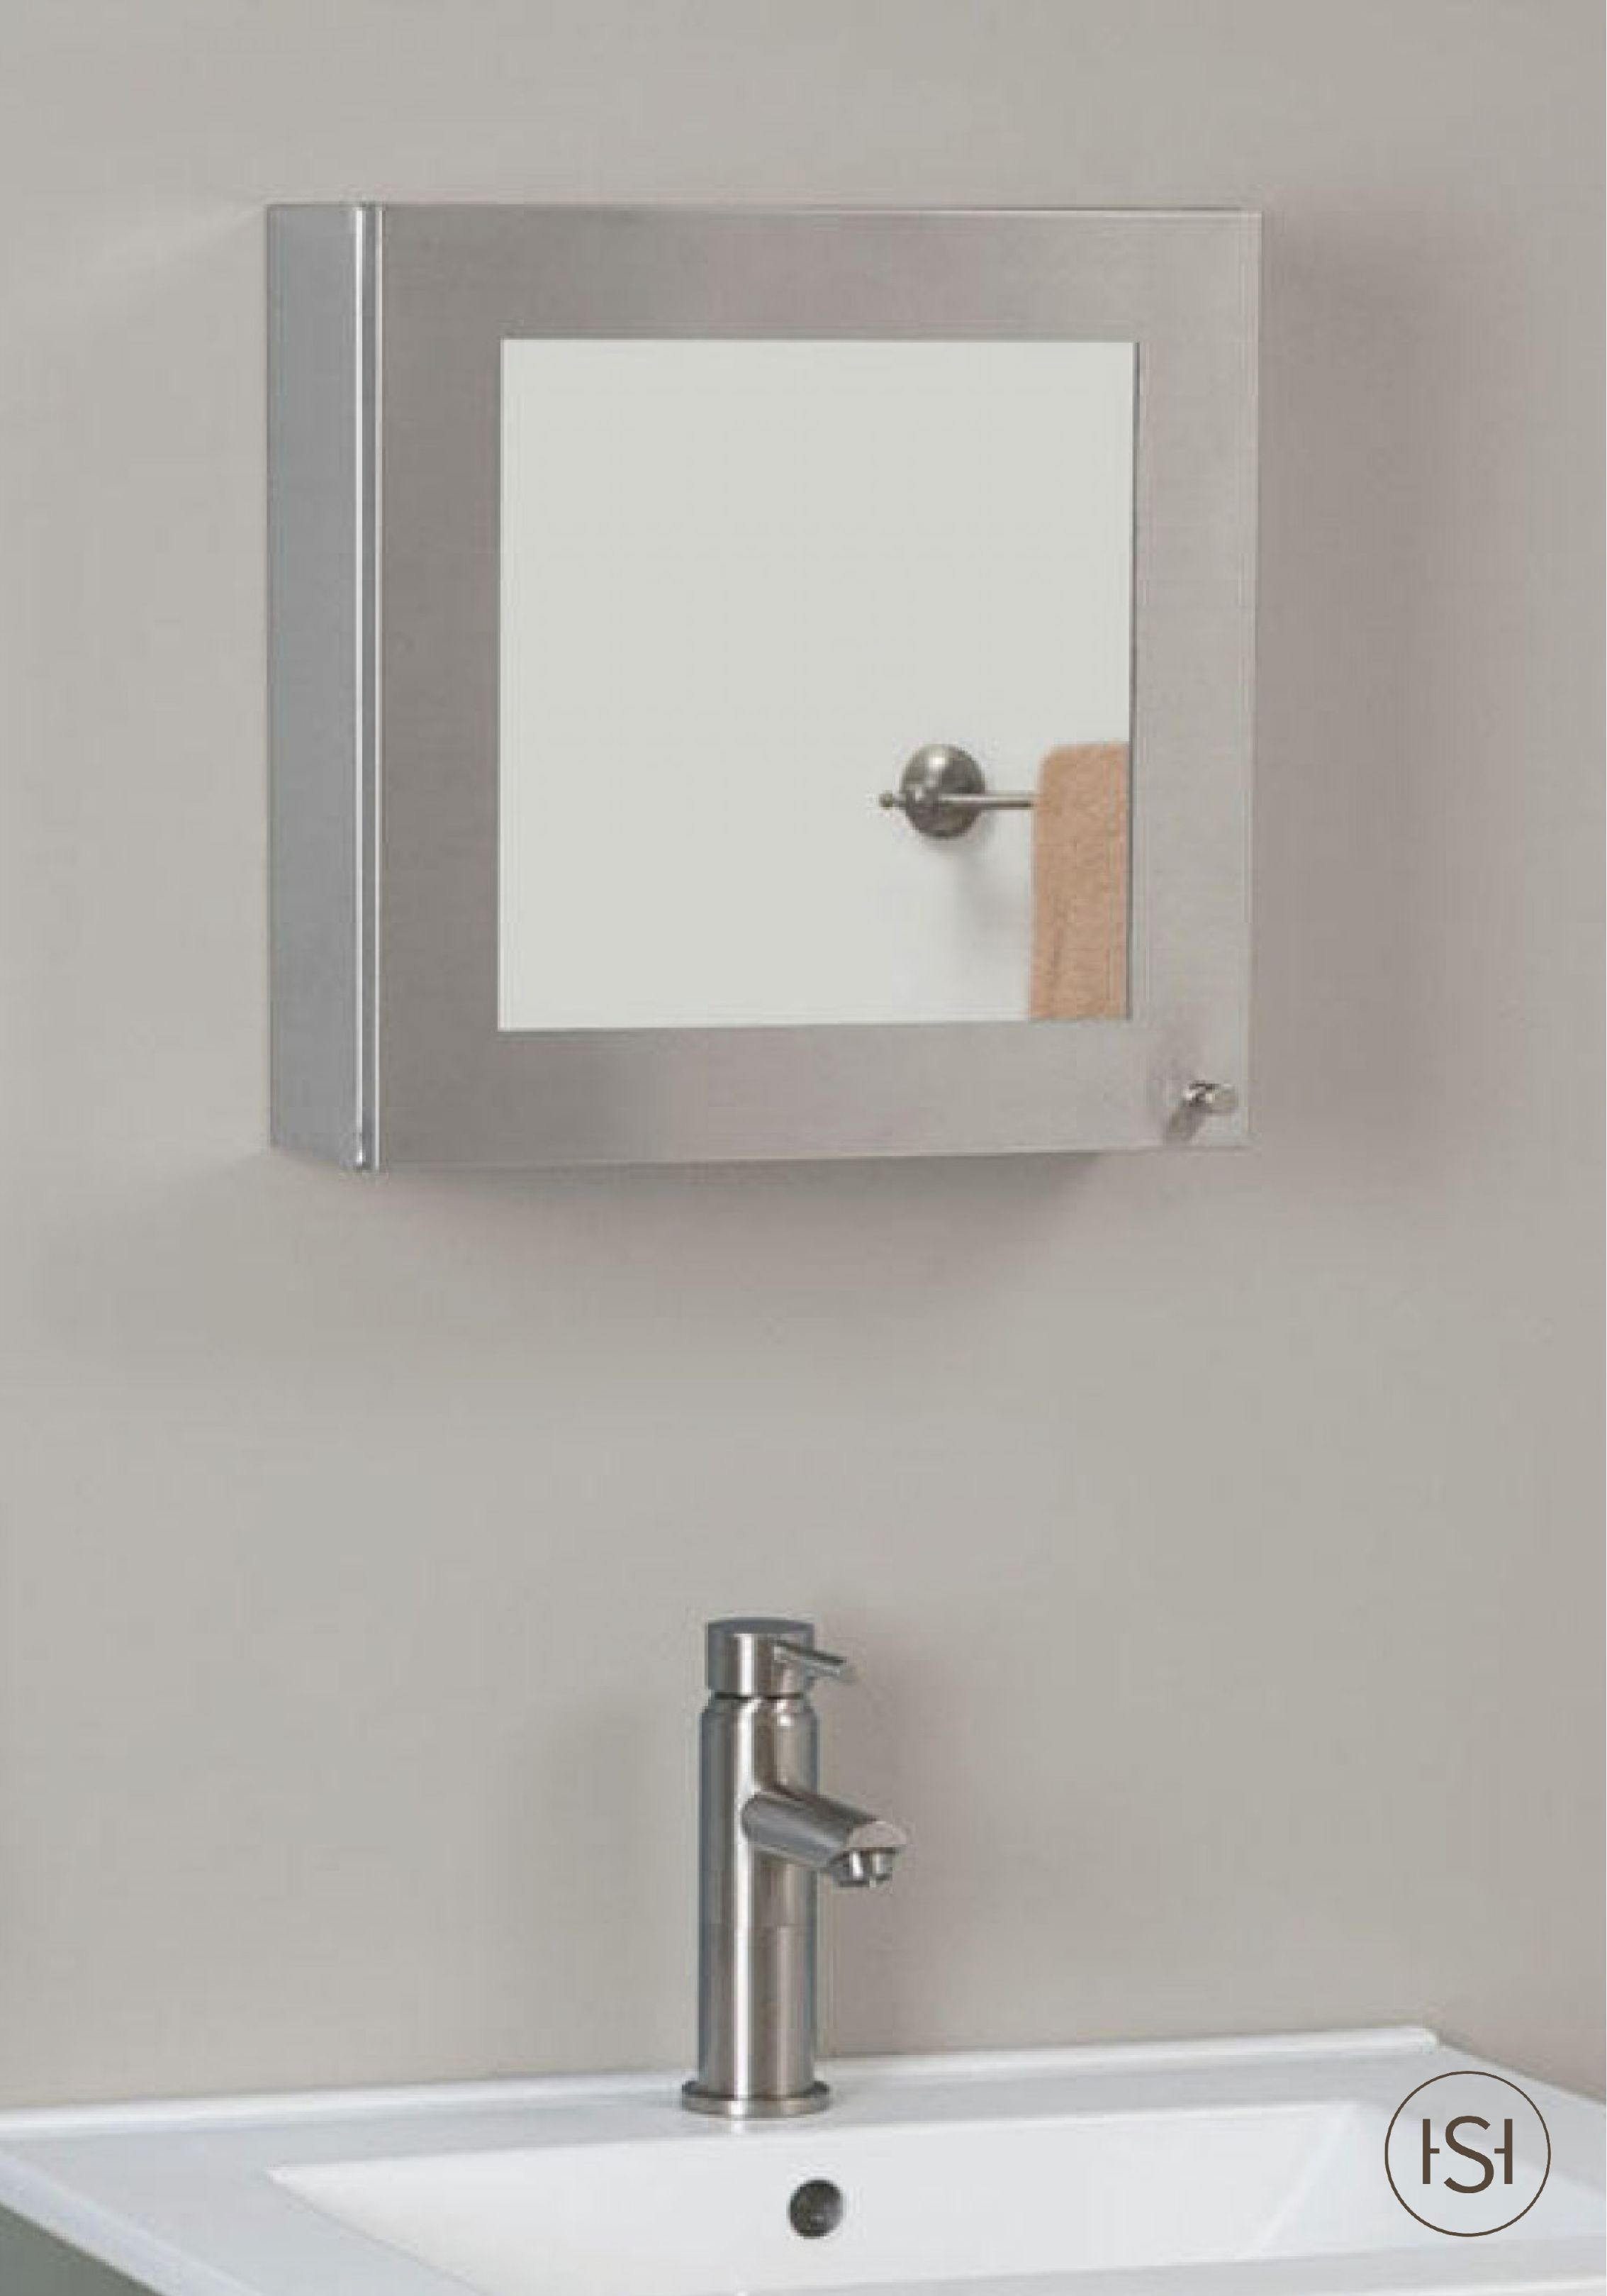 This Signature Hardware Stainless Steel Medicine Cabinet Mirror Is